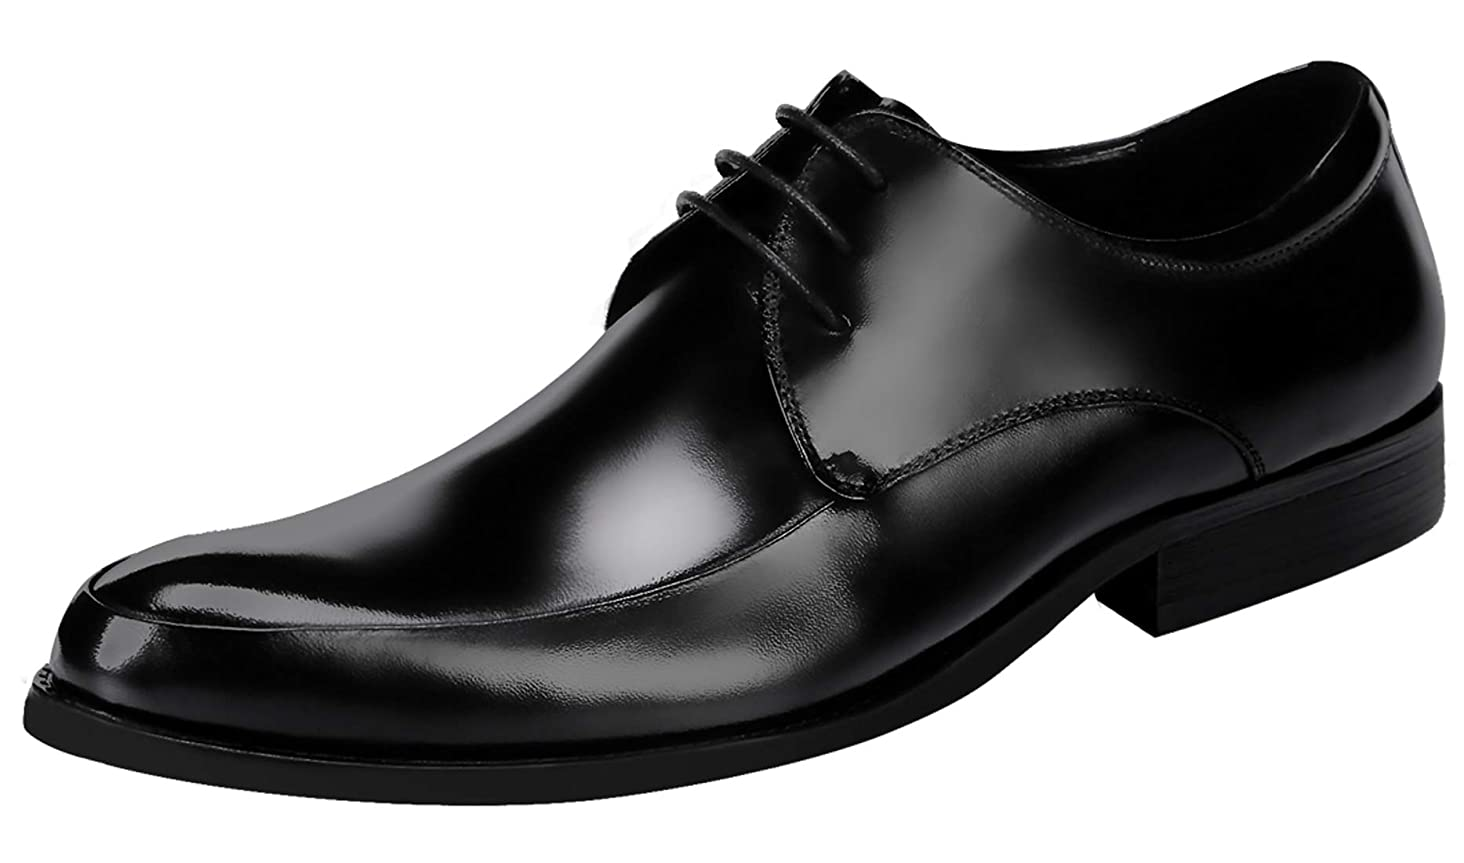 Mens Dress Shoes Oxford for Men Classic Formal Leather Lace Up Derby Wedding Shoes